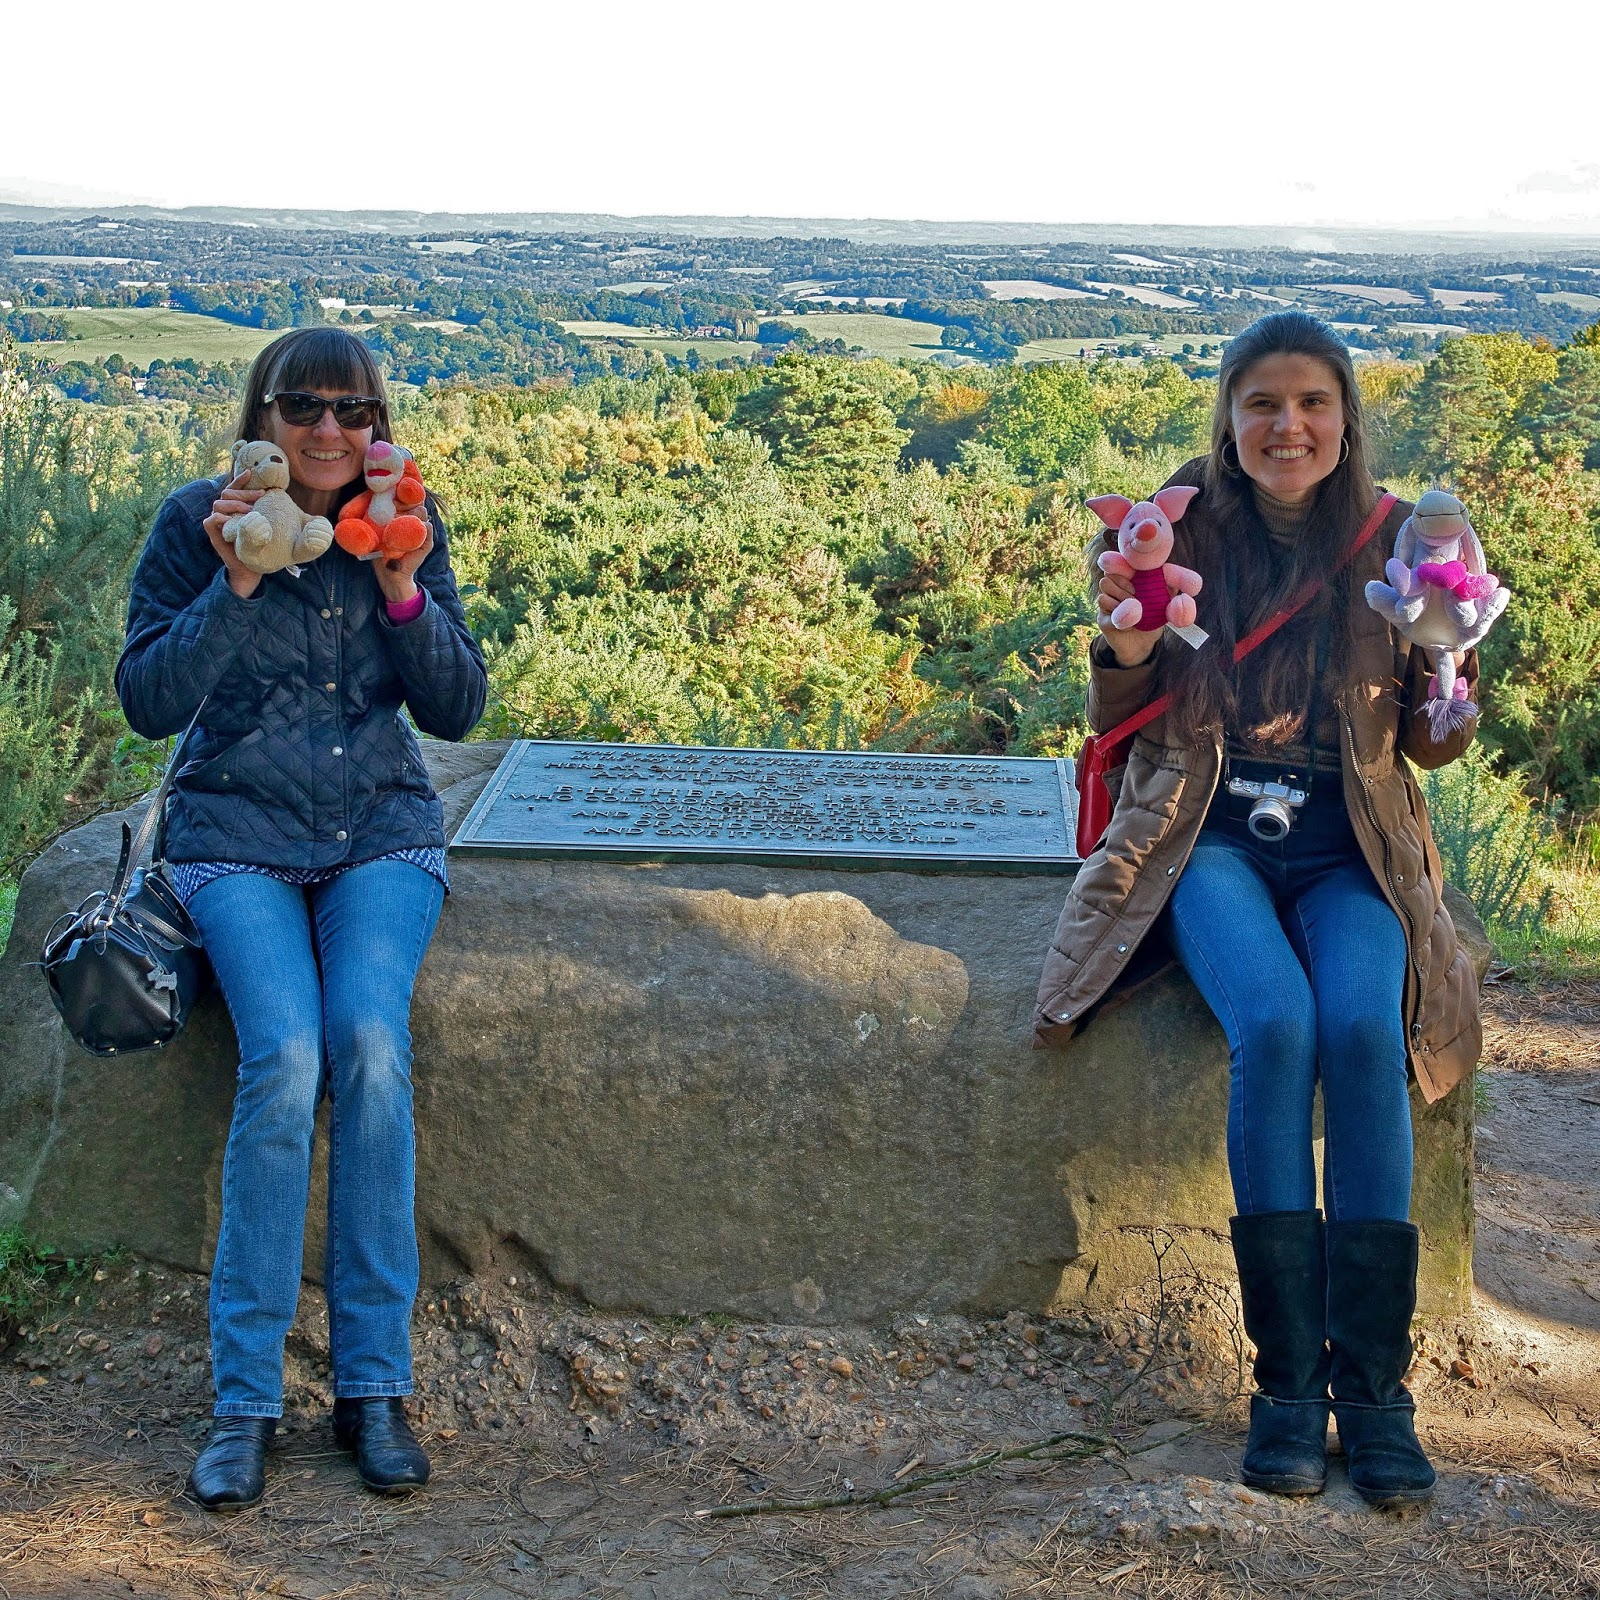 Kat Last and Mum beside the A.A. Milne and E.H. Shepard Memorial, Ashdown Forest